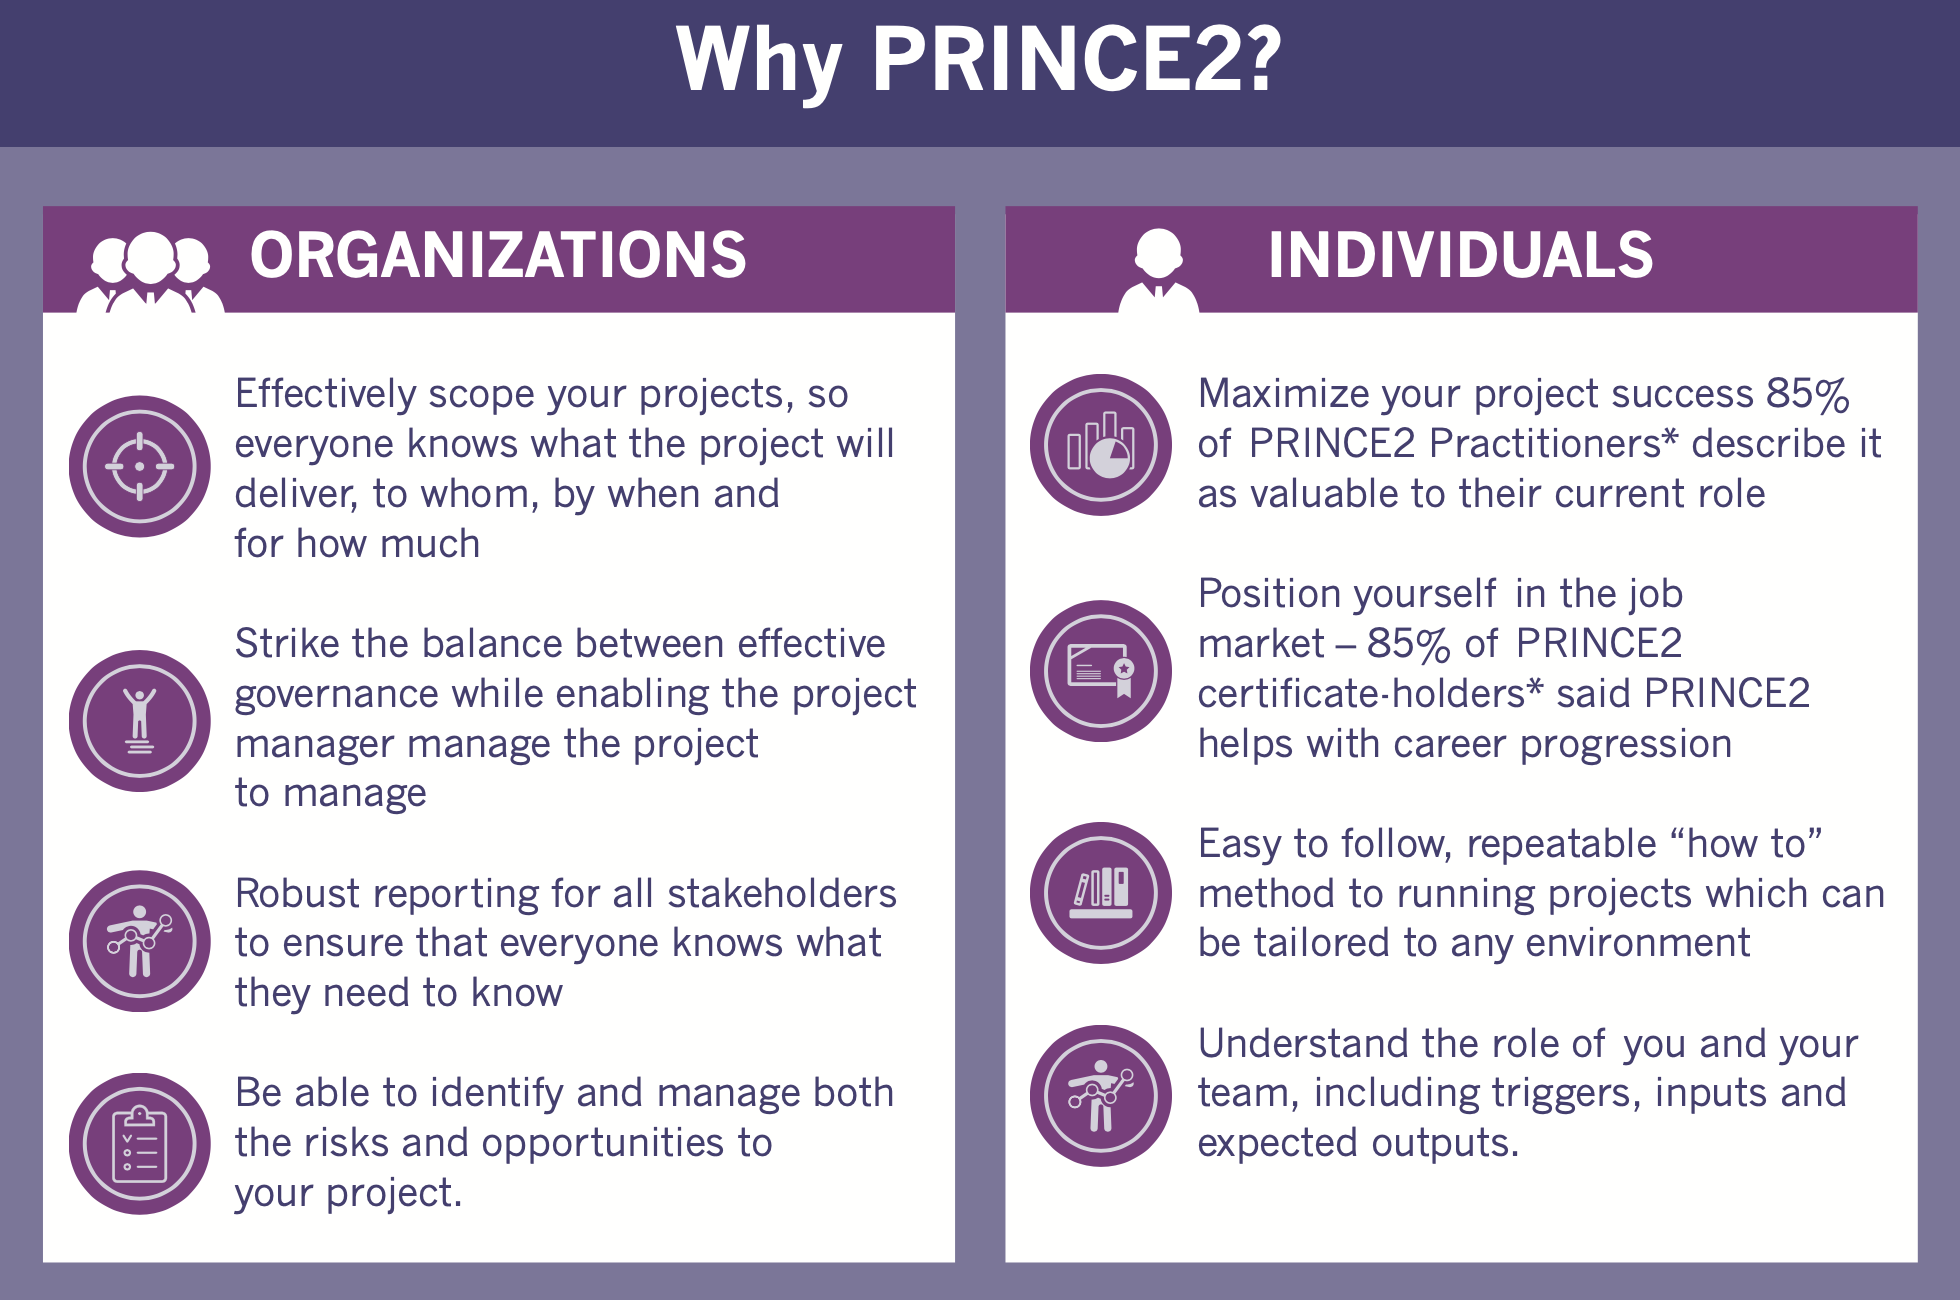 Why Prince2